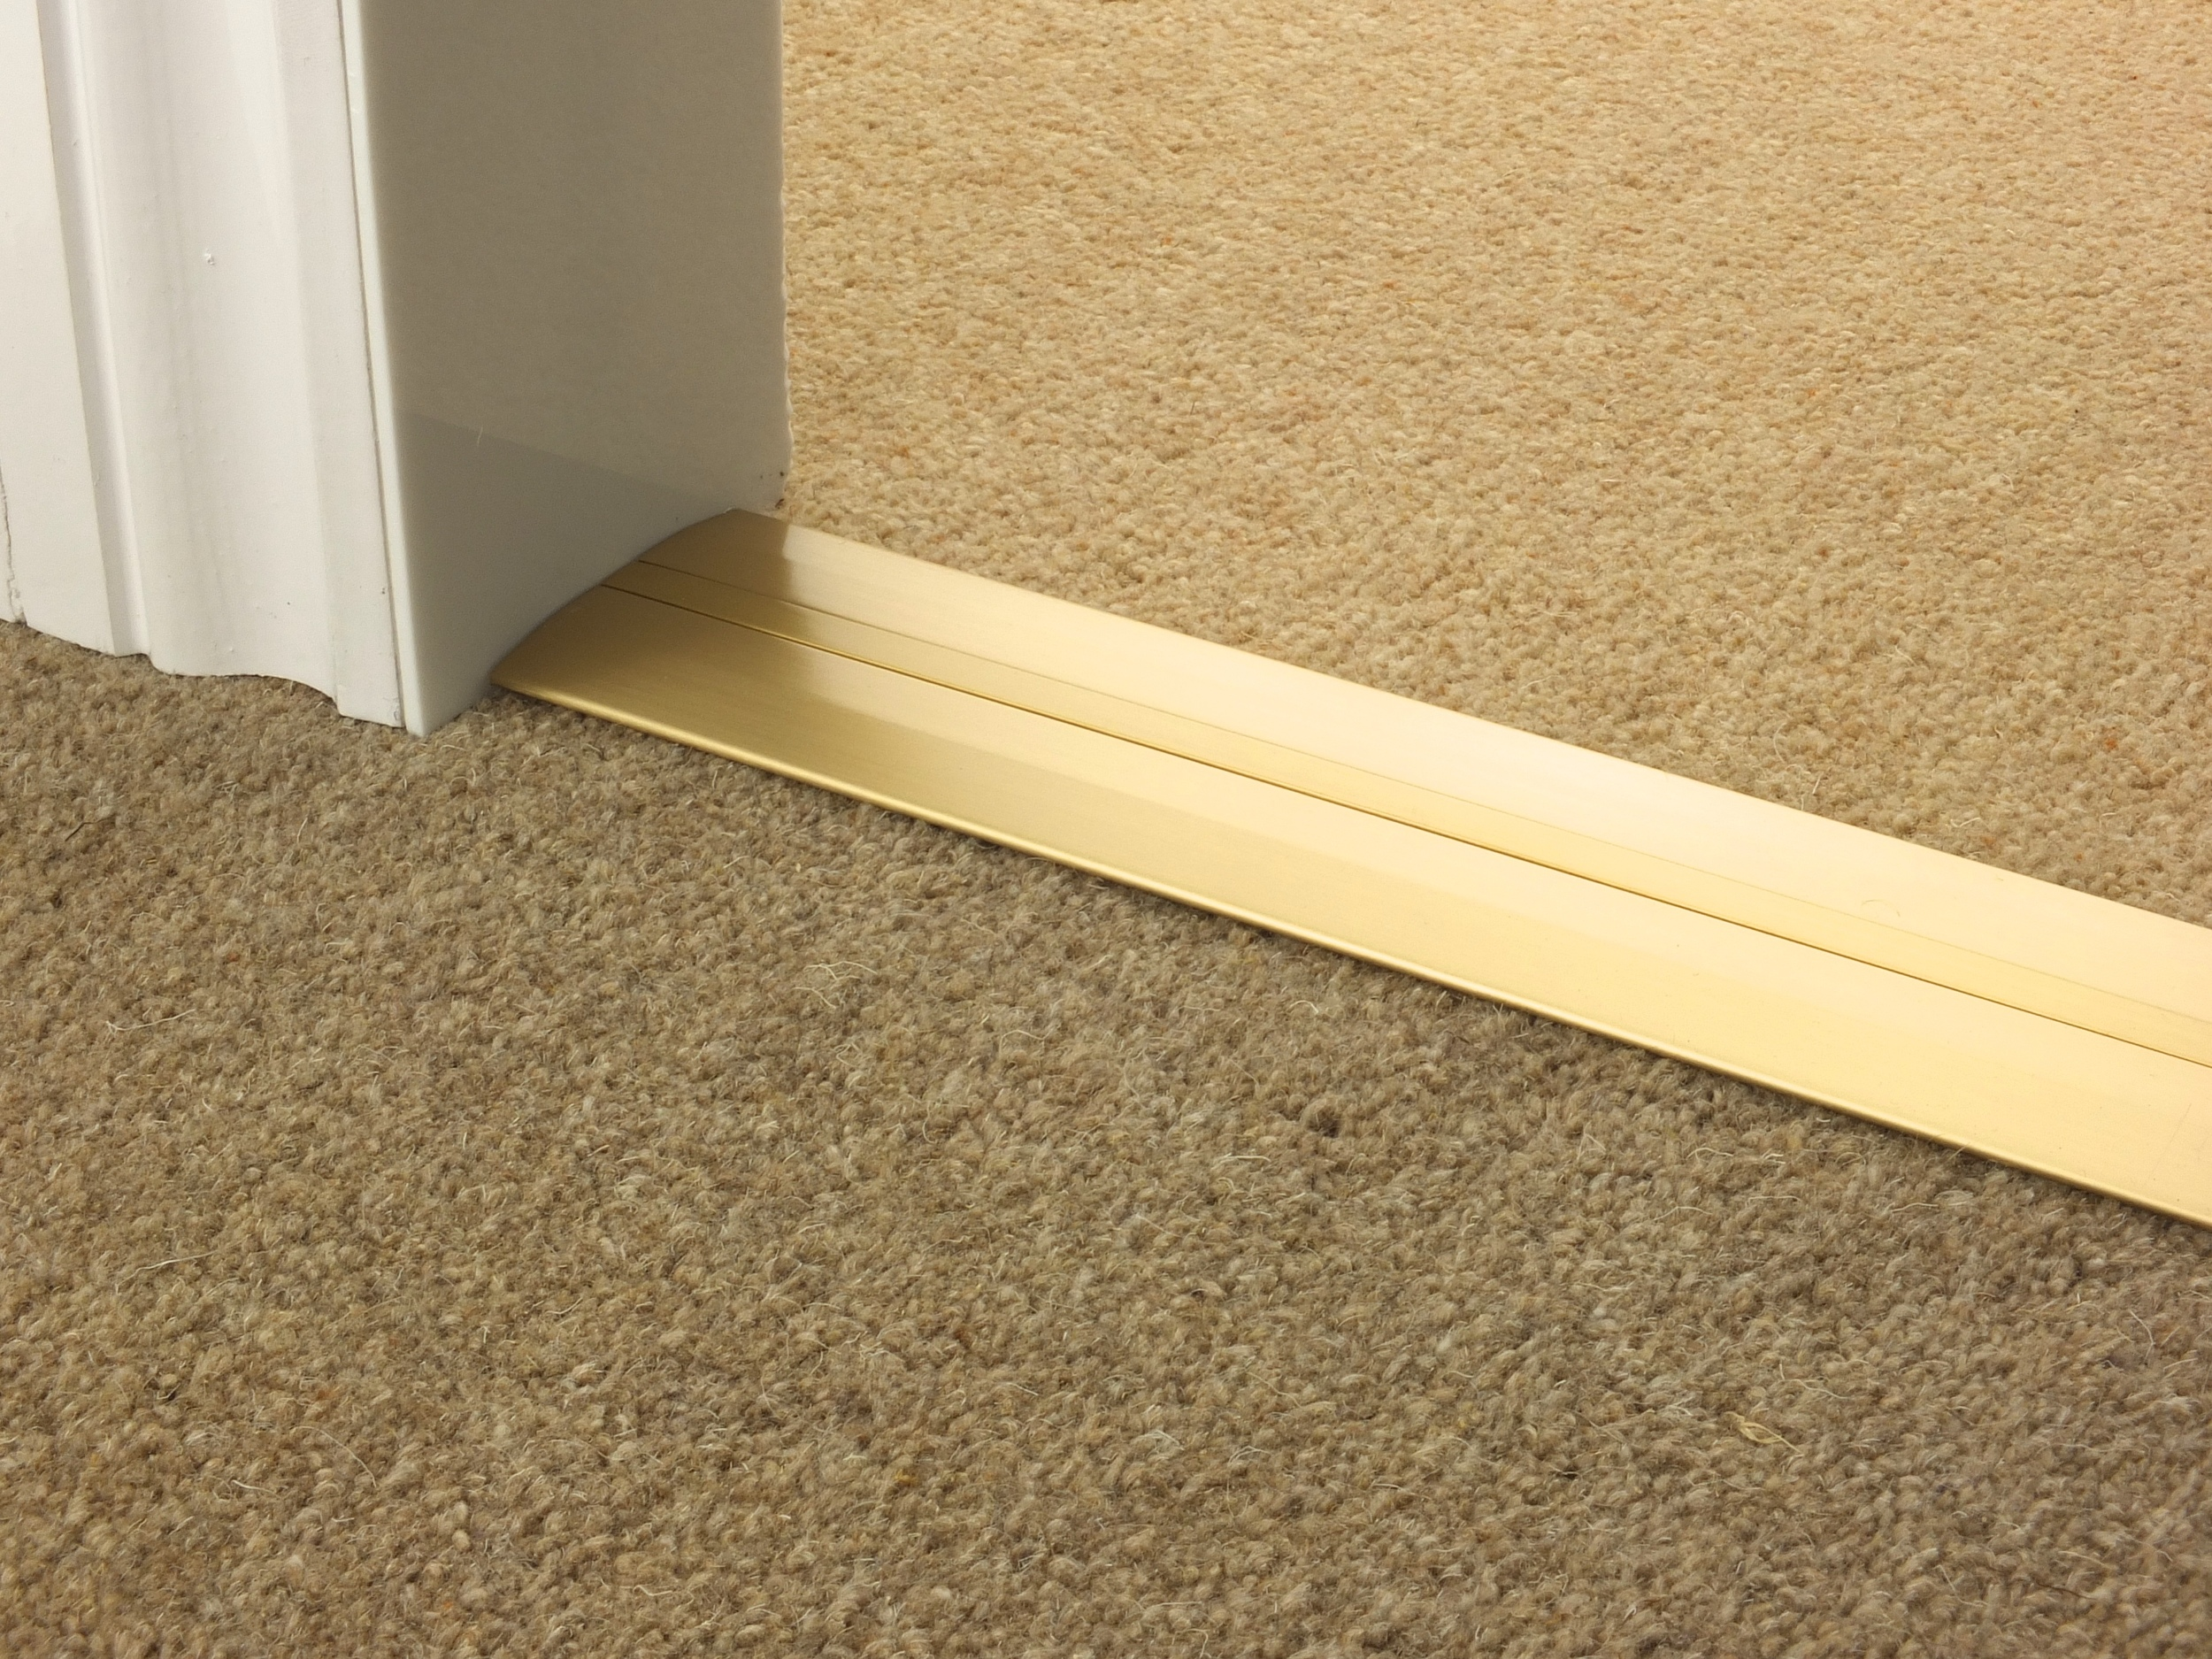 door_bar_satin_brass_posh55_carpet_carpet.jpg